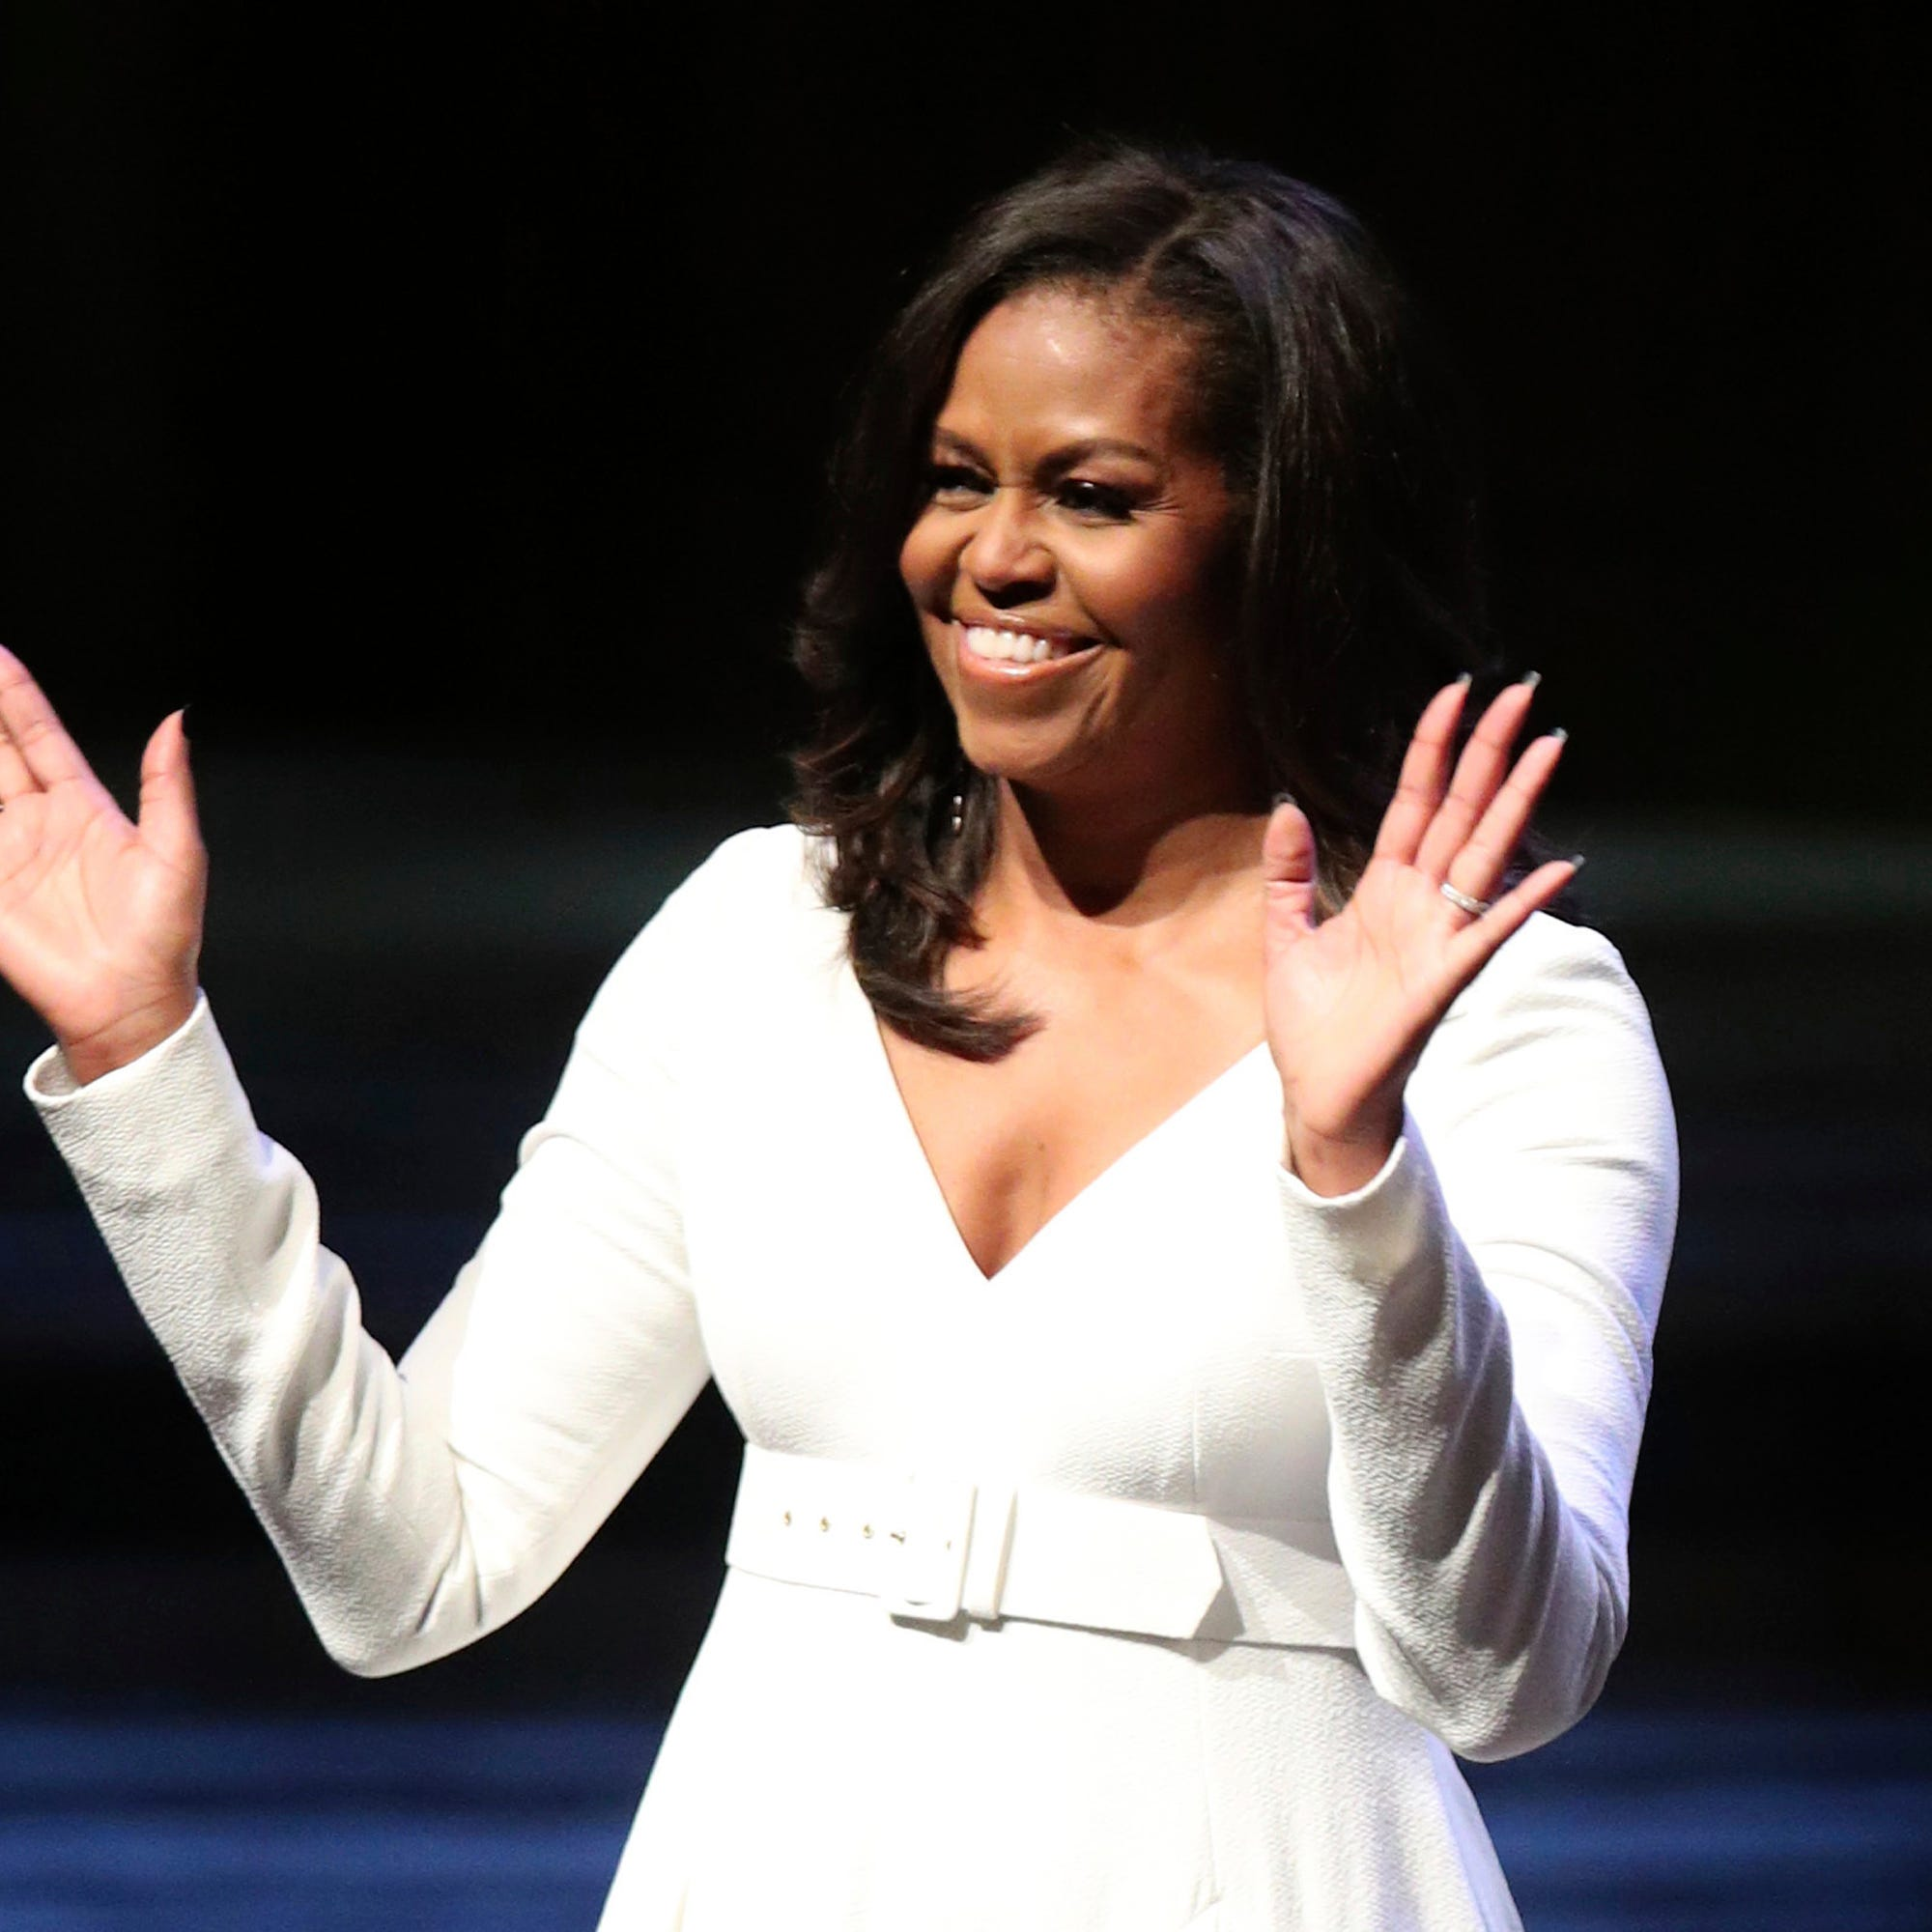 Michelle Obama may be the strongest 2020 Democratic candidate | Opinion